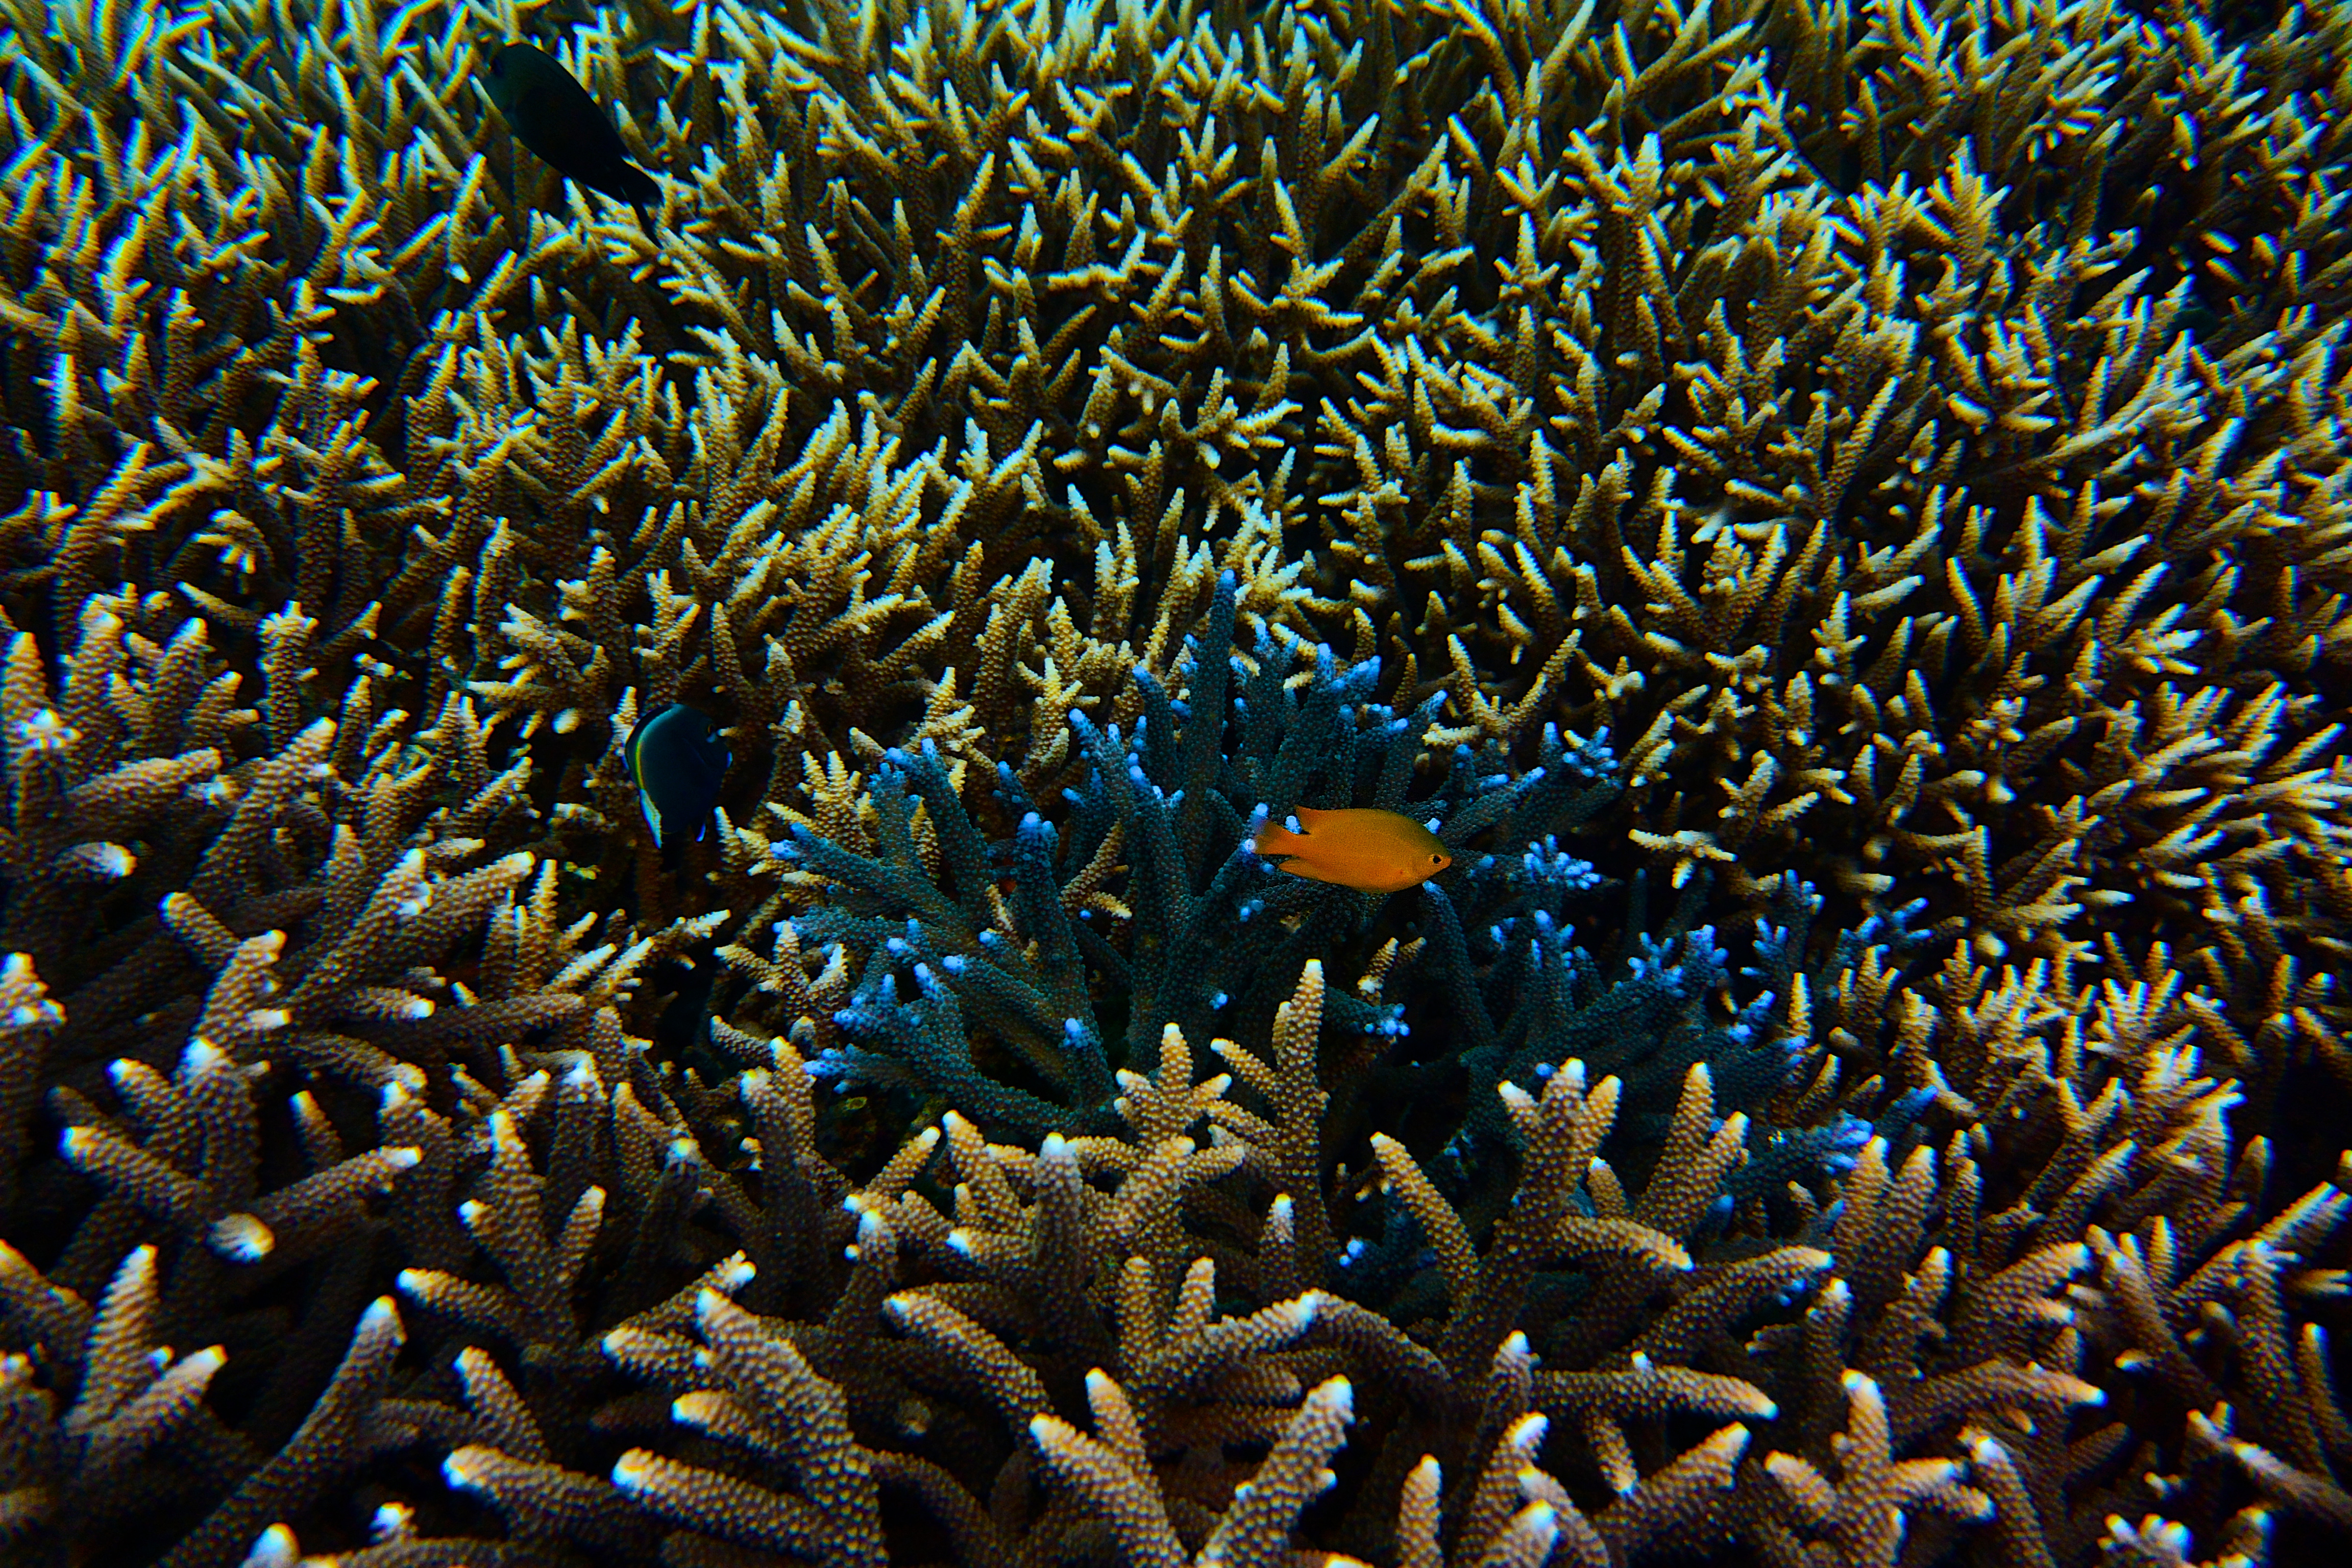 HIDING IN THE REEF